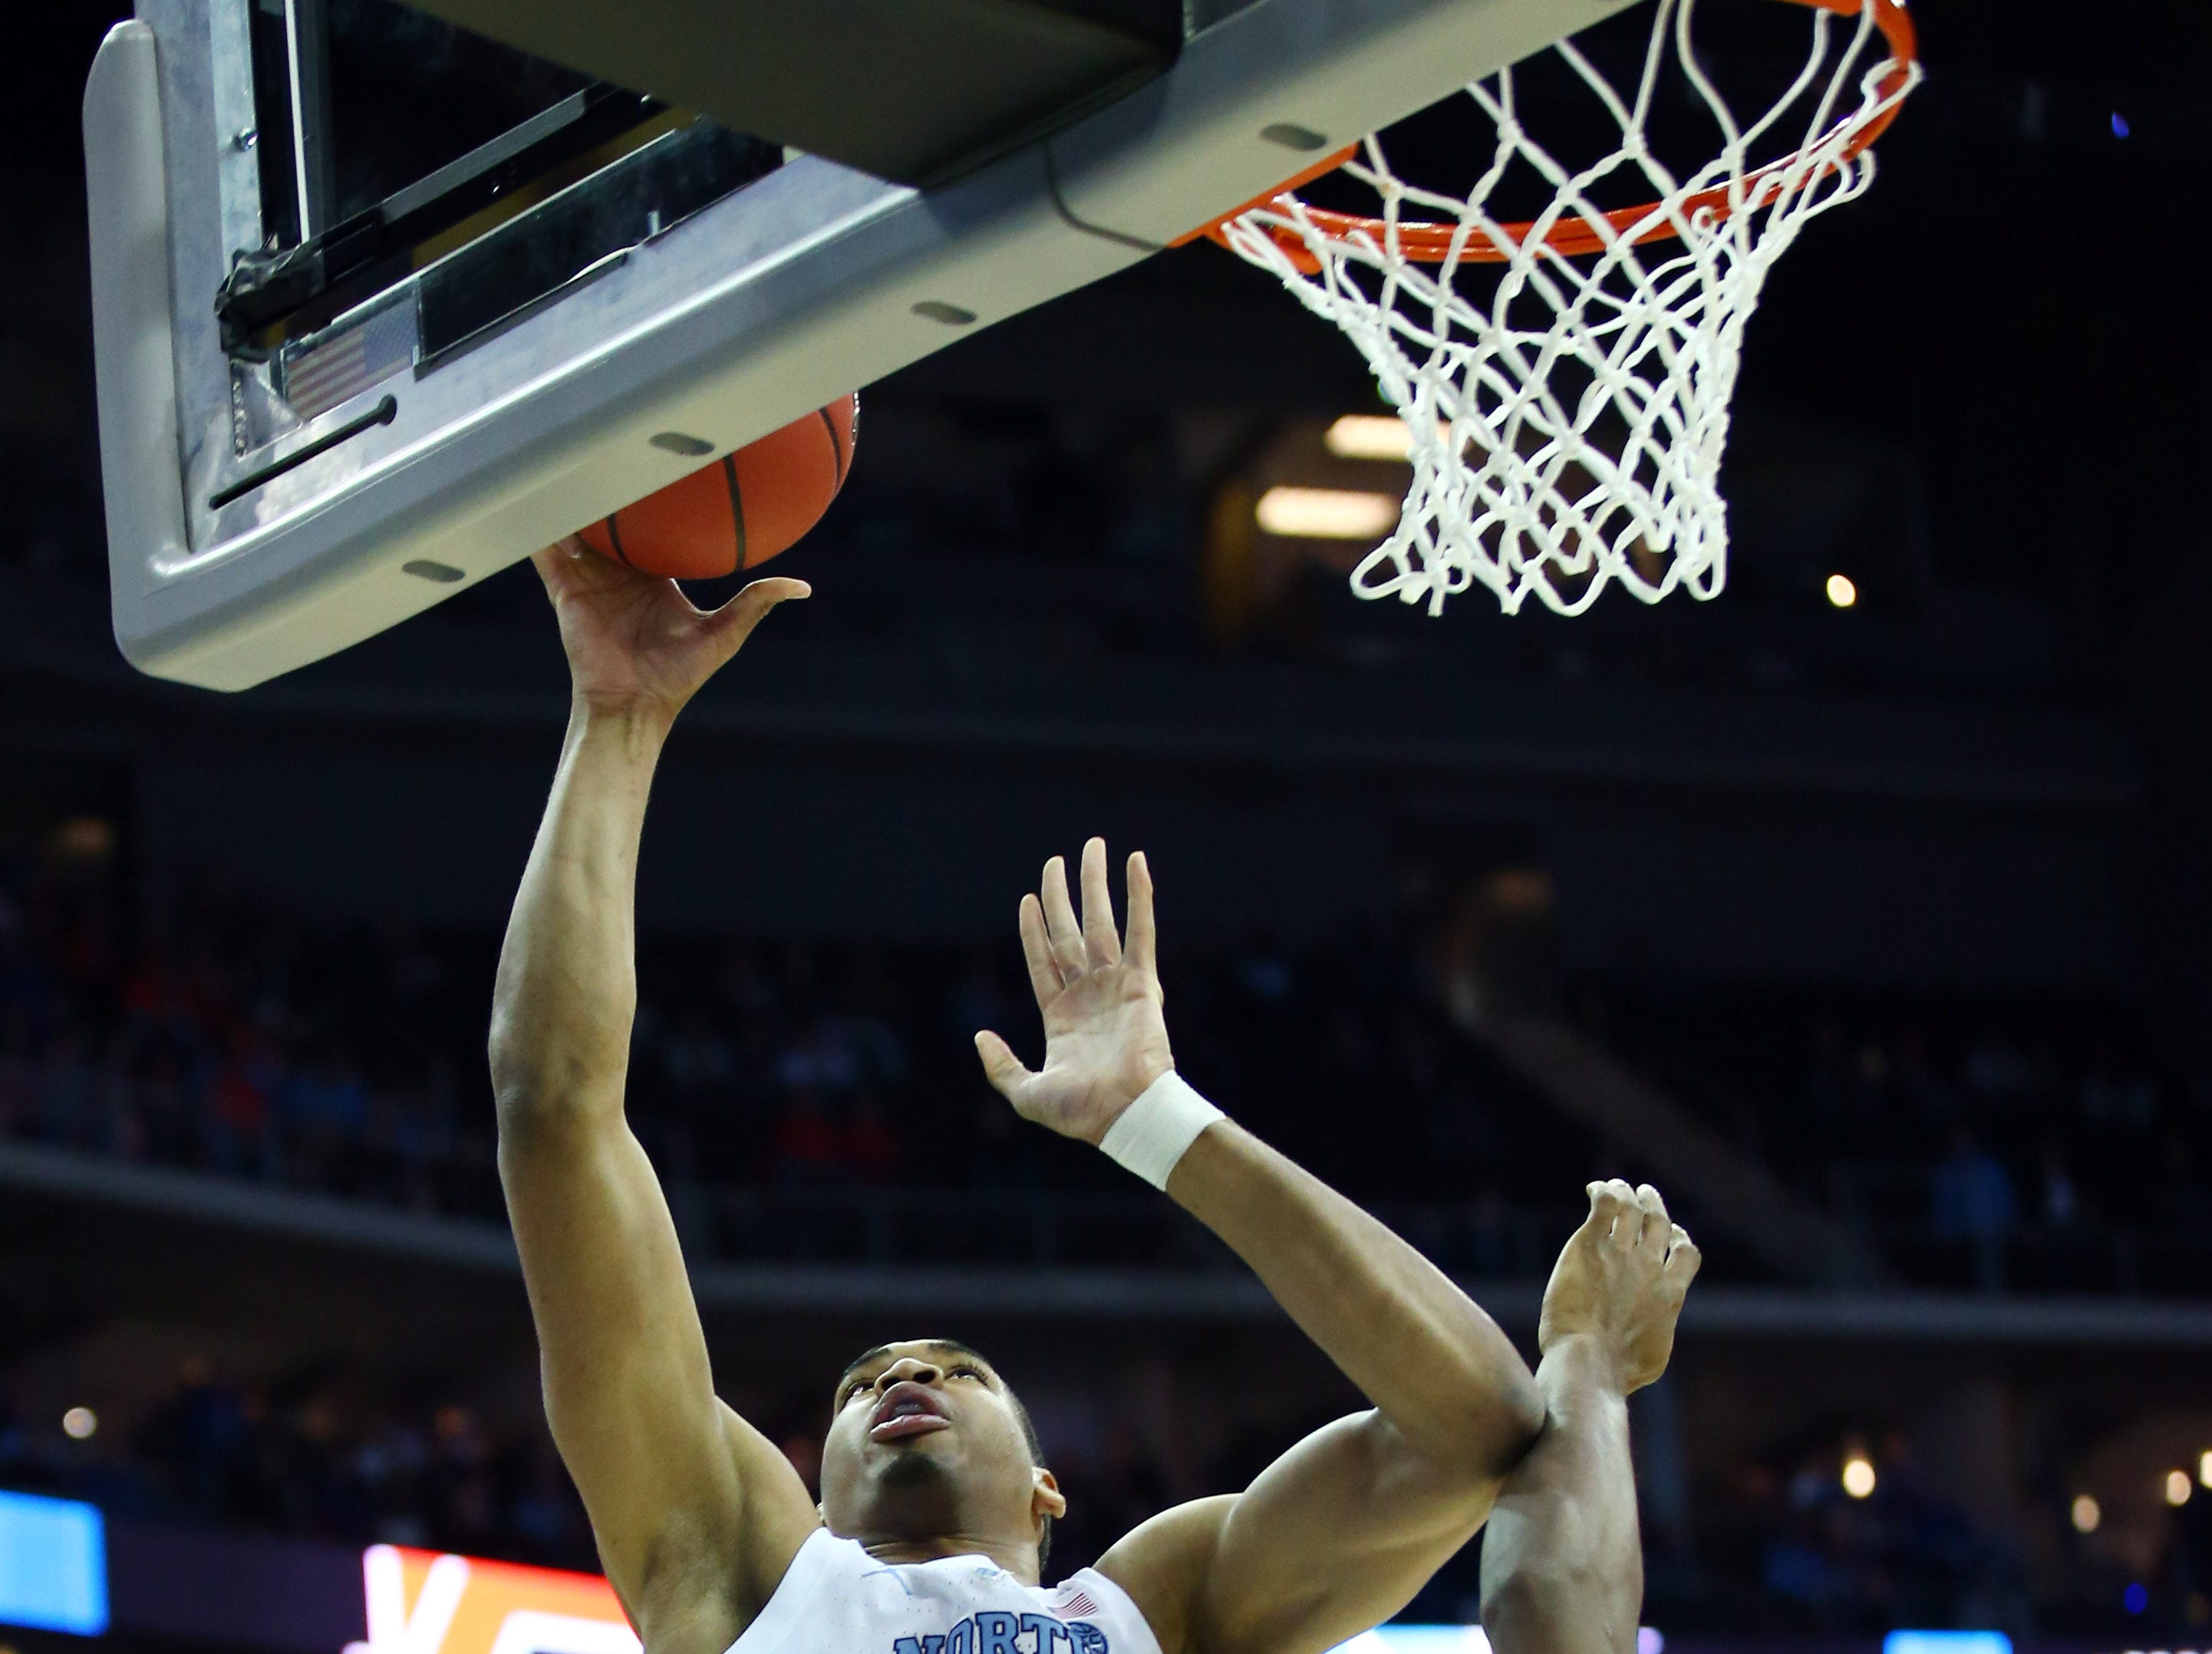 Mar 29, 2019; Kansas City, MO, United States; North Carolina Tar Heels forward Garrison Brooks (15) shoots over Auburn Tigers forward Anfernee McLemore (24) during the first half in the semifinals of the midwest regional of the 2019 NCAA Tournament at Sprint Center. Mandatory Credit: Jay Biggerstaff-USA TODAY Sports